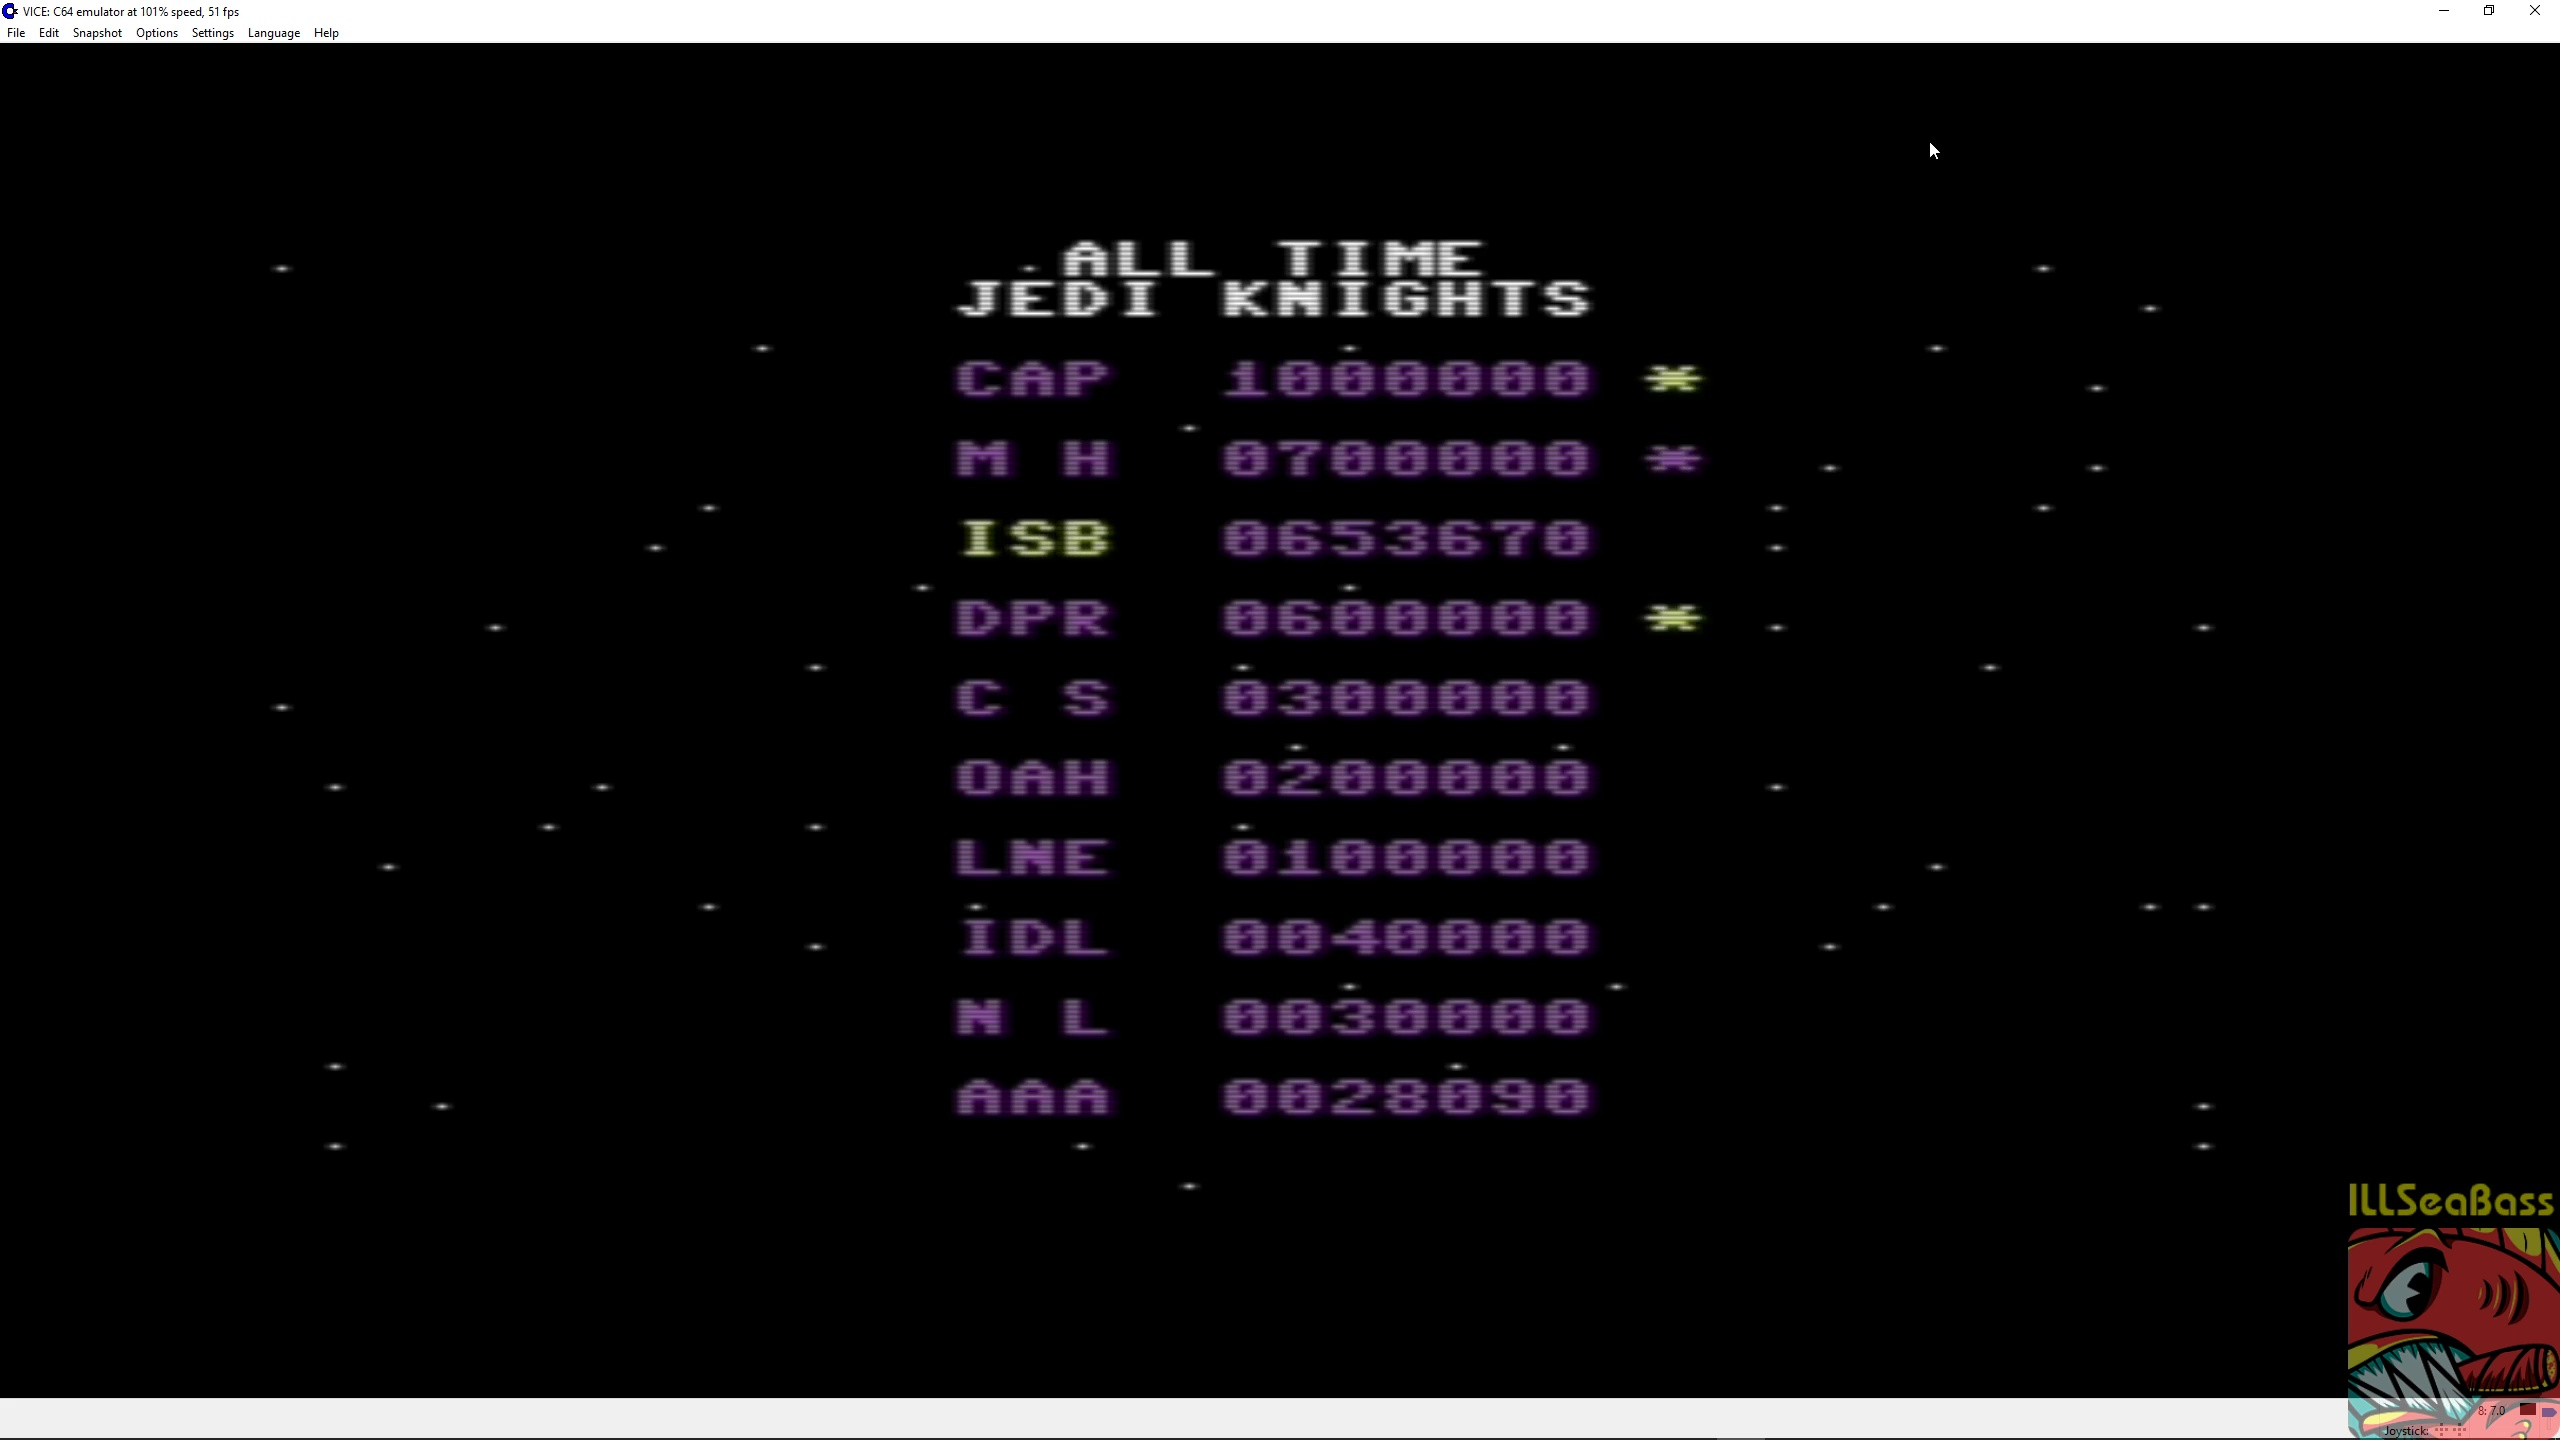 ILLSeaBass: Star Wars: Return of the Jedi [Hard] (Commodore 64 Emulated) 653,670 points on 2018-03-11 21:56:21